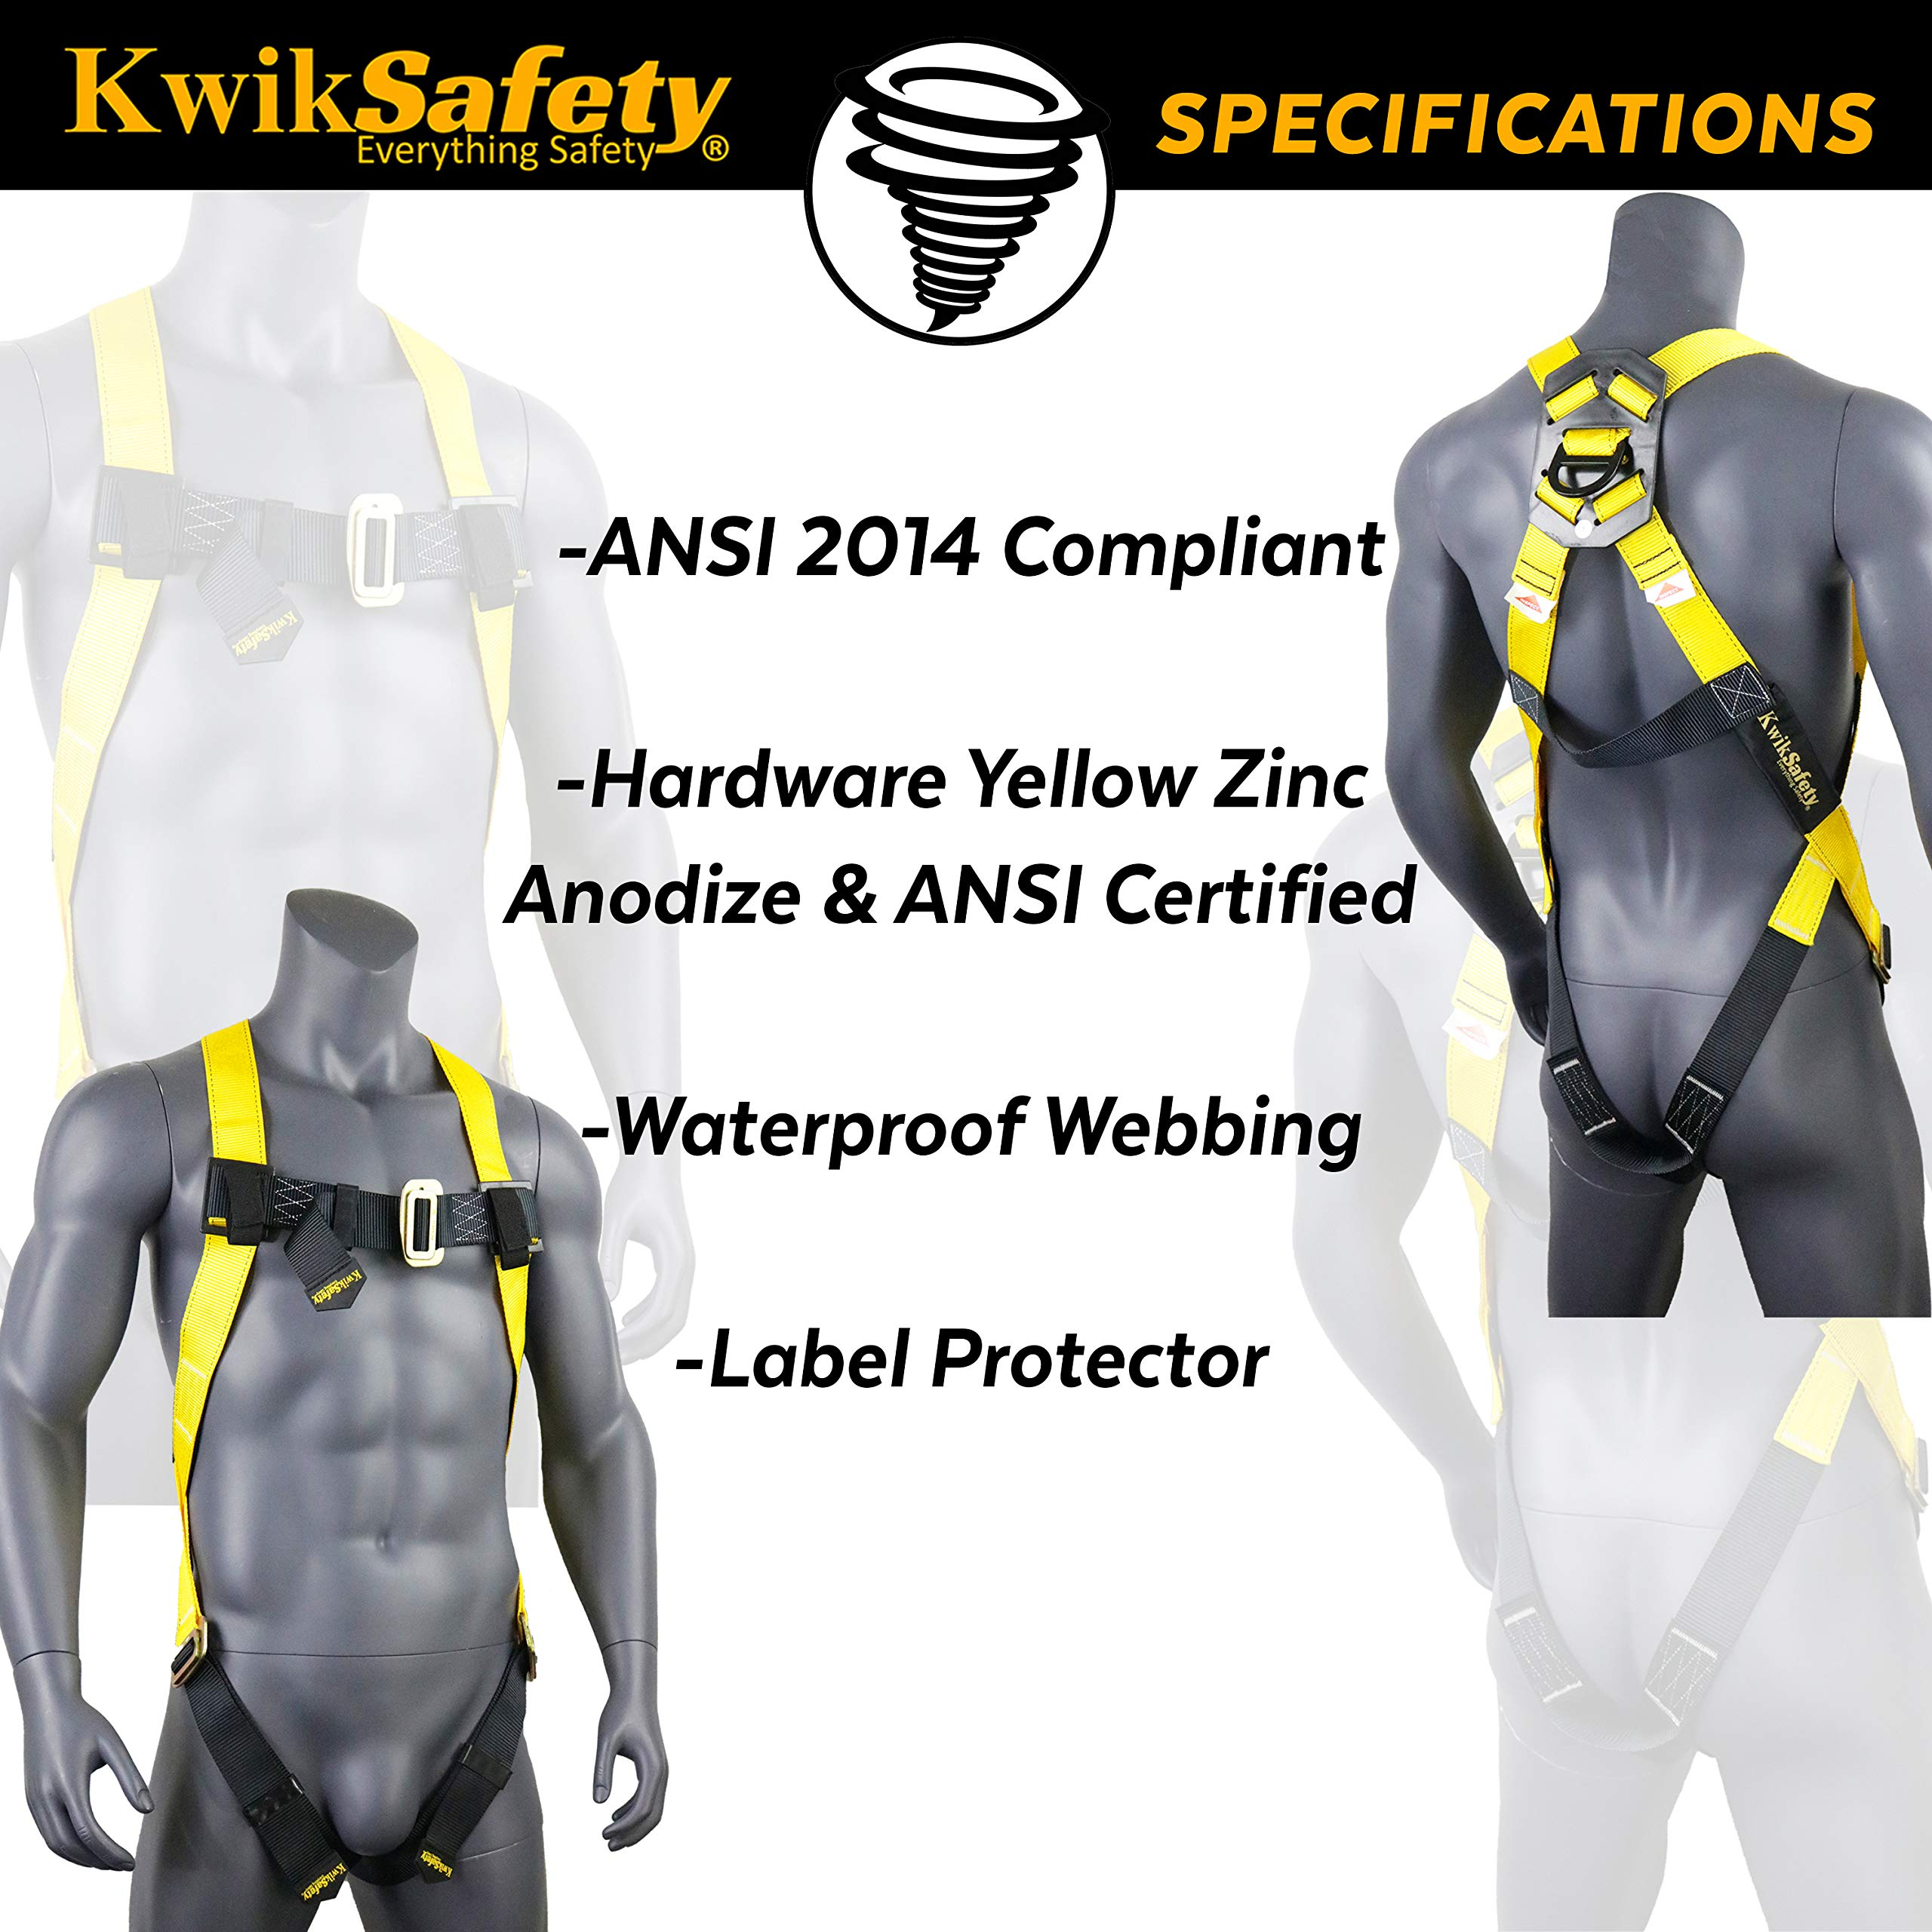 KwikSafety (Charlotte, NC) 4 PACK TORNADO 1D Fall Protection Full Body Safety Harness | OSHA ANSI Industrial Roofing Personal Protection Equipment | Construction Carpenter Scaffolding Contractor by KwikSafety (Image #5)